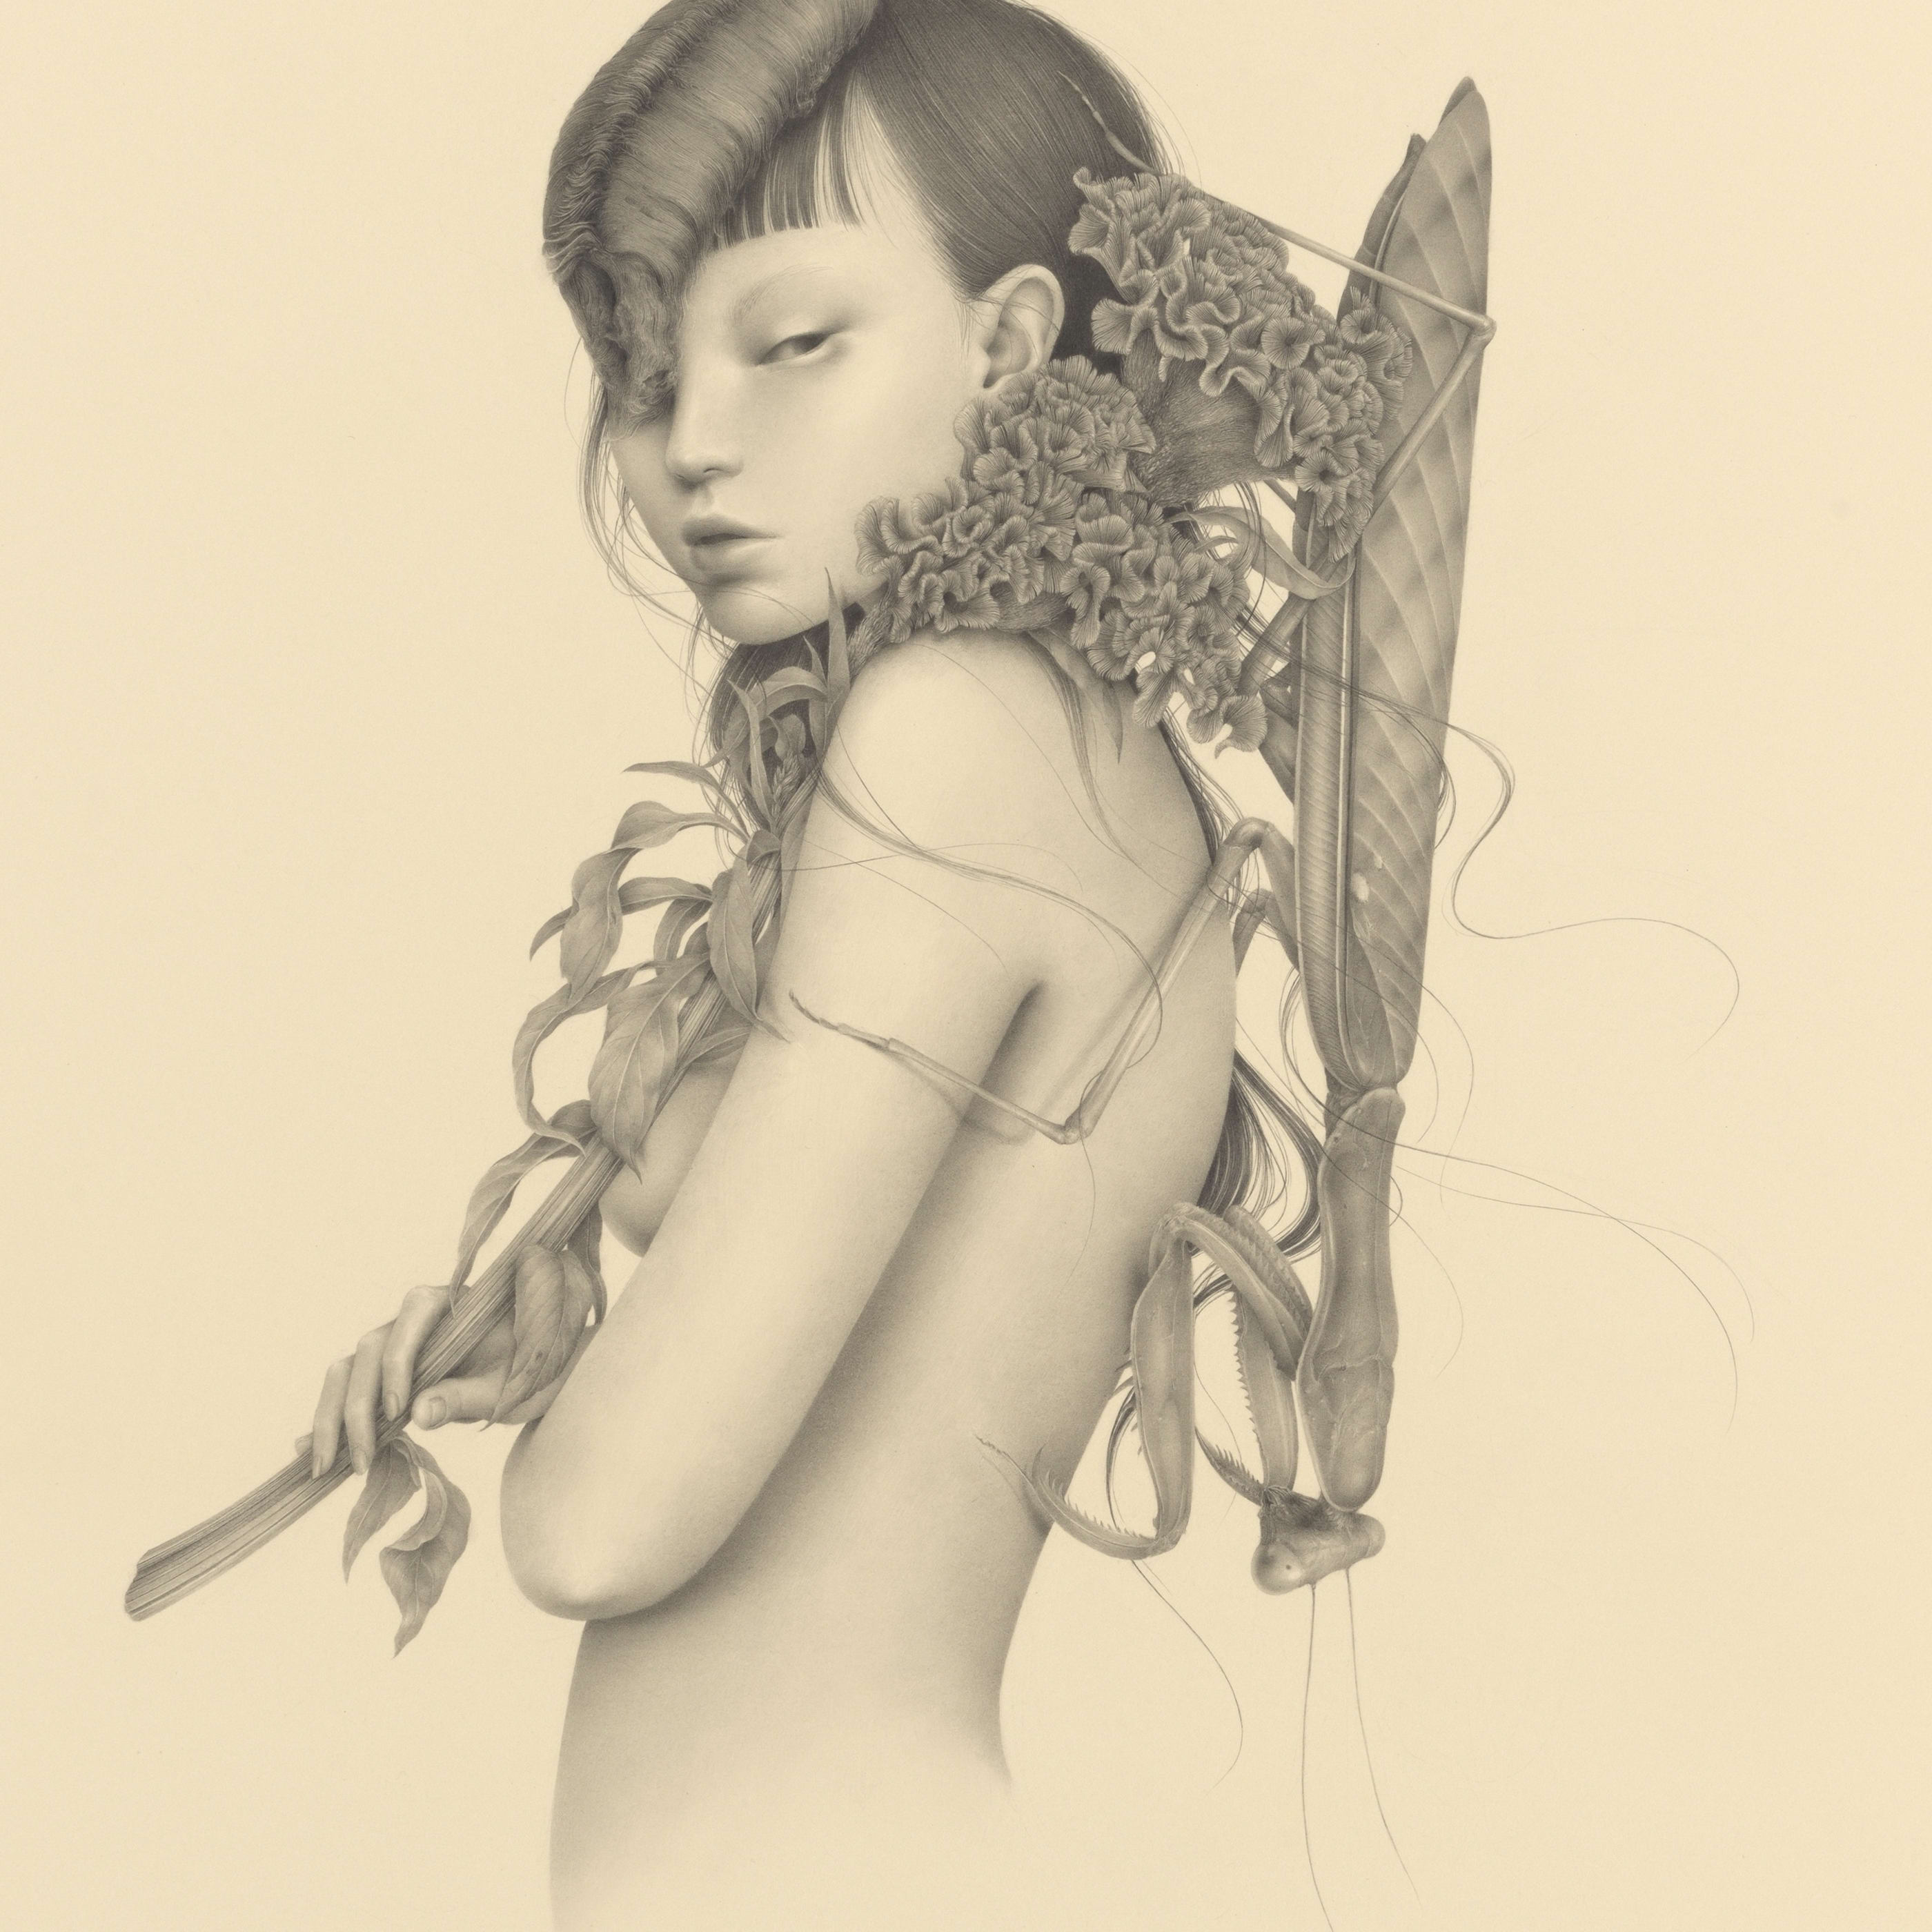 graphite drawing by Ozabu, featuring nude female with flowers and insects